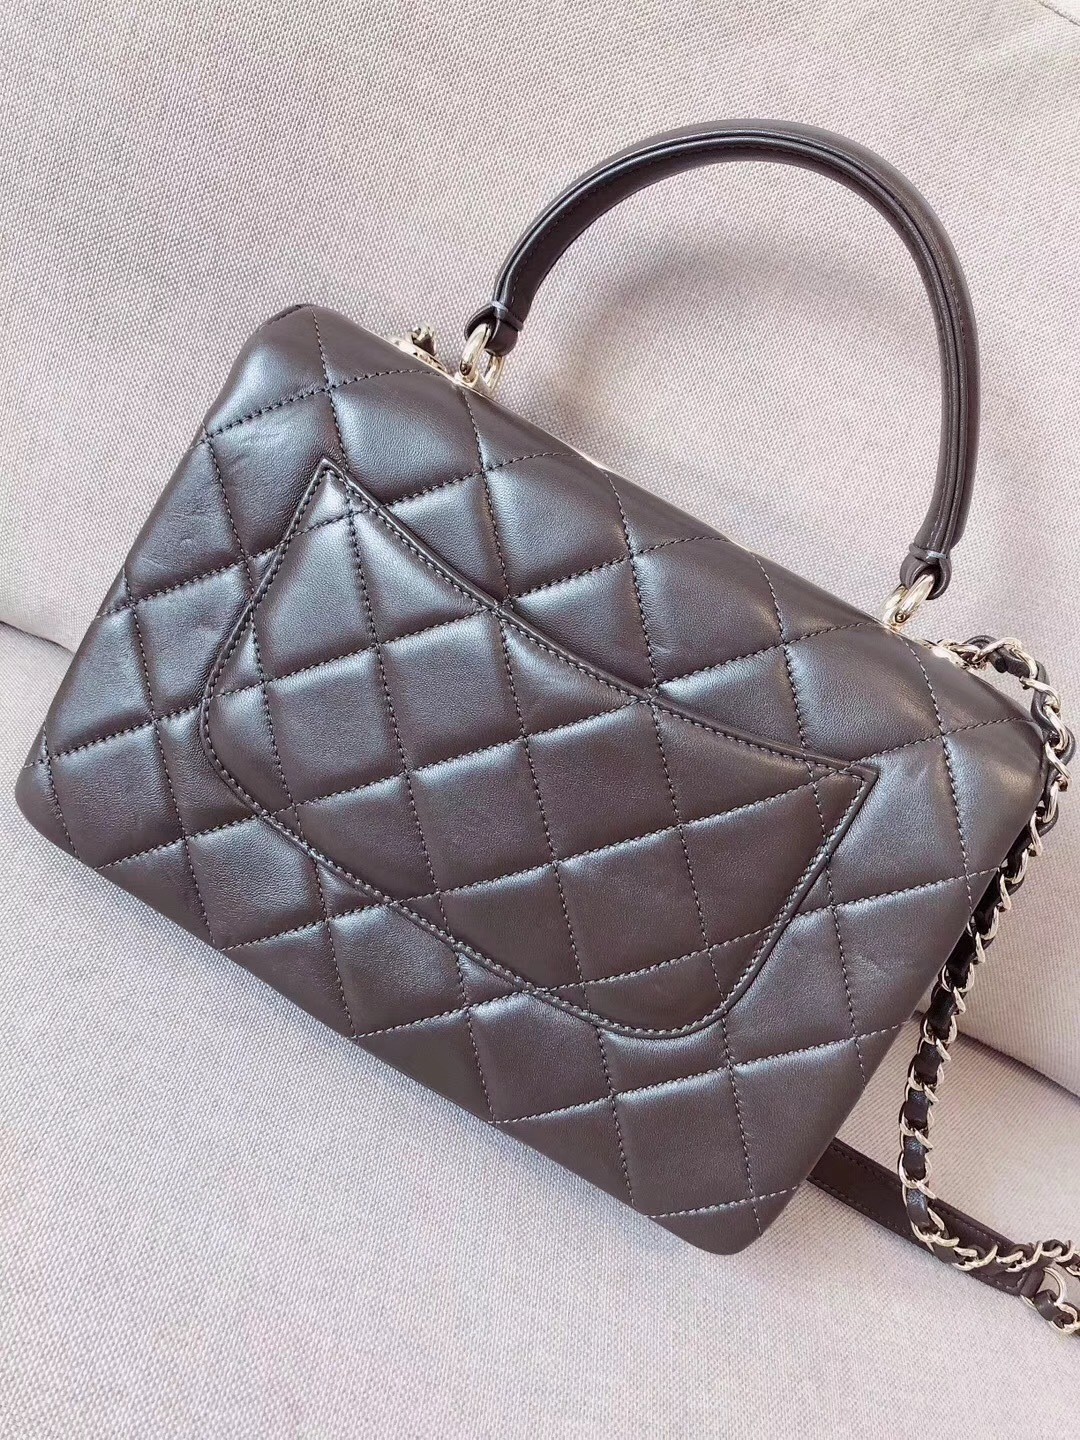 AUTHENTIC CHANEL QUILTED LAMBSKIN TRENDY CC 2 WAY HANDLE FLAP BAG GHW image 2